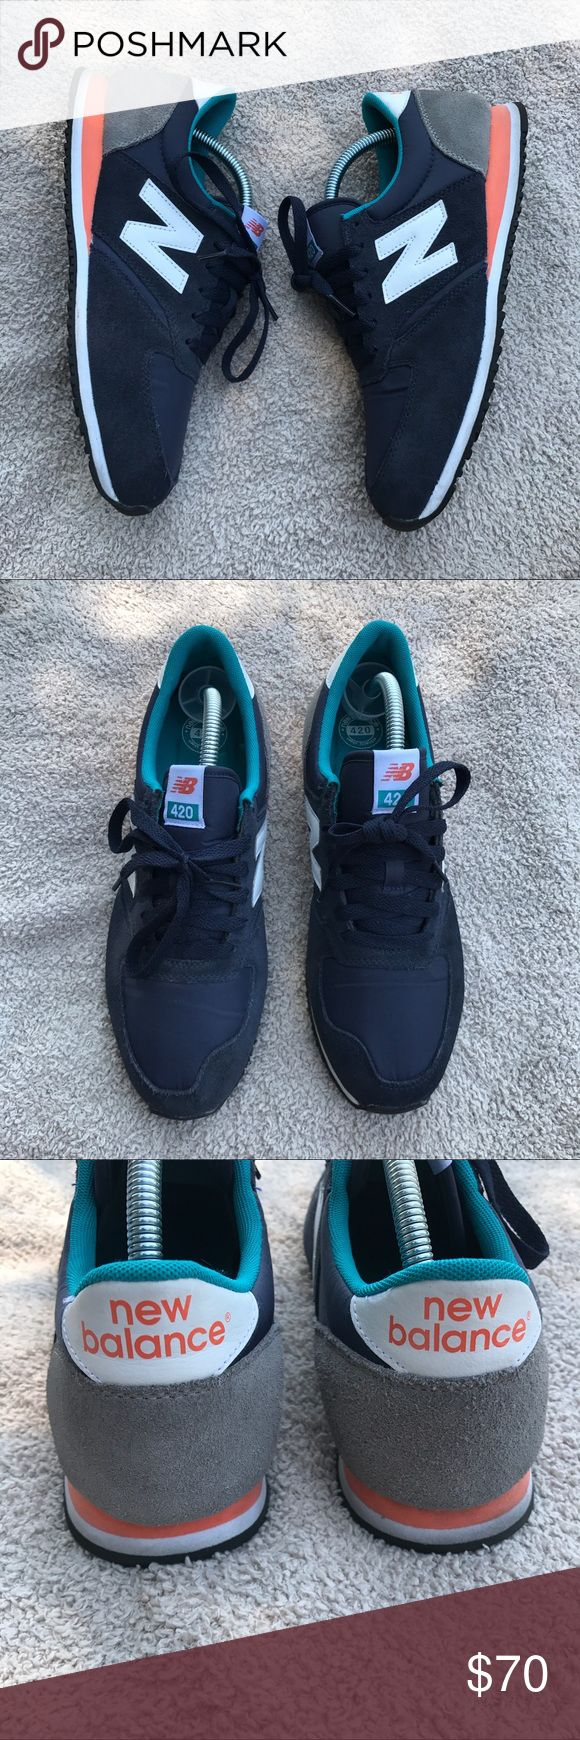 New Balance 420 Sneakers Like New  Gently worn  No holes, rips or stains.  Open to offers  Bundle discounts available New Balance Shoes Sneakers